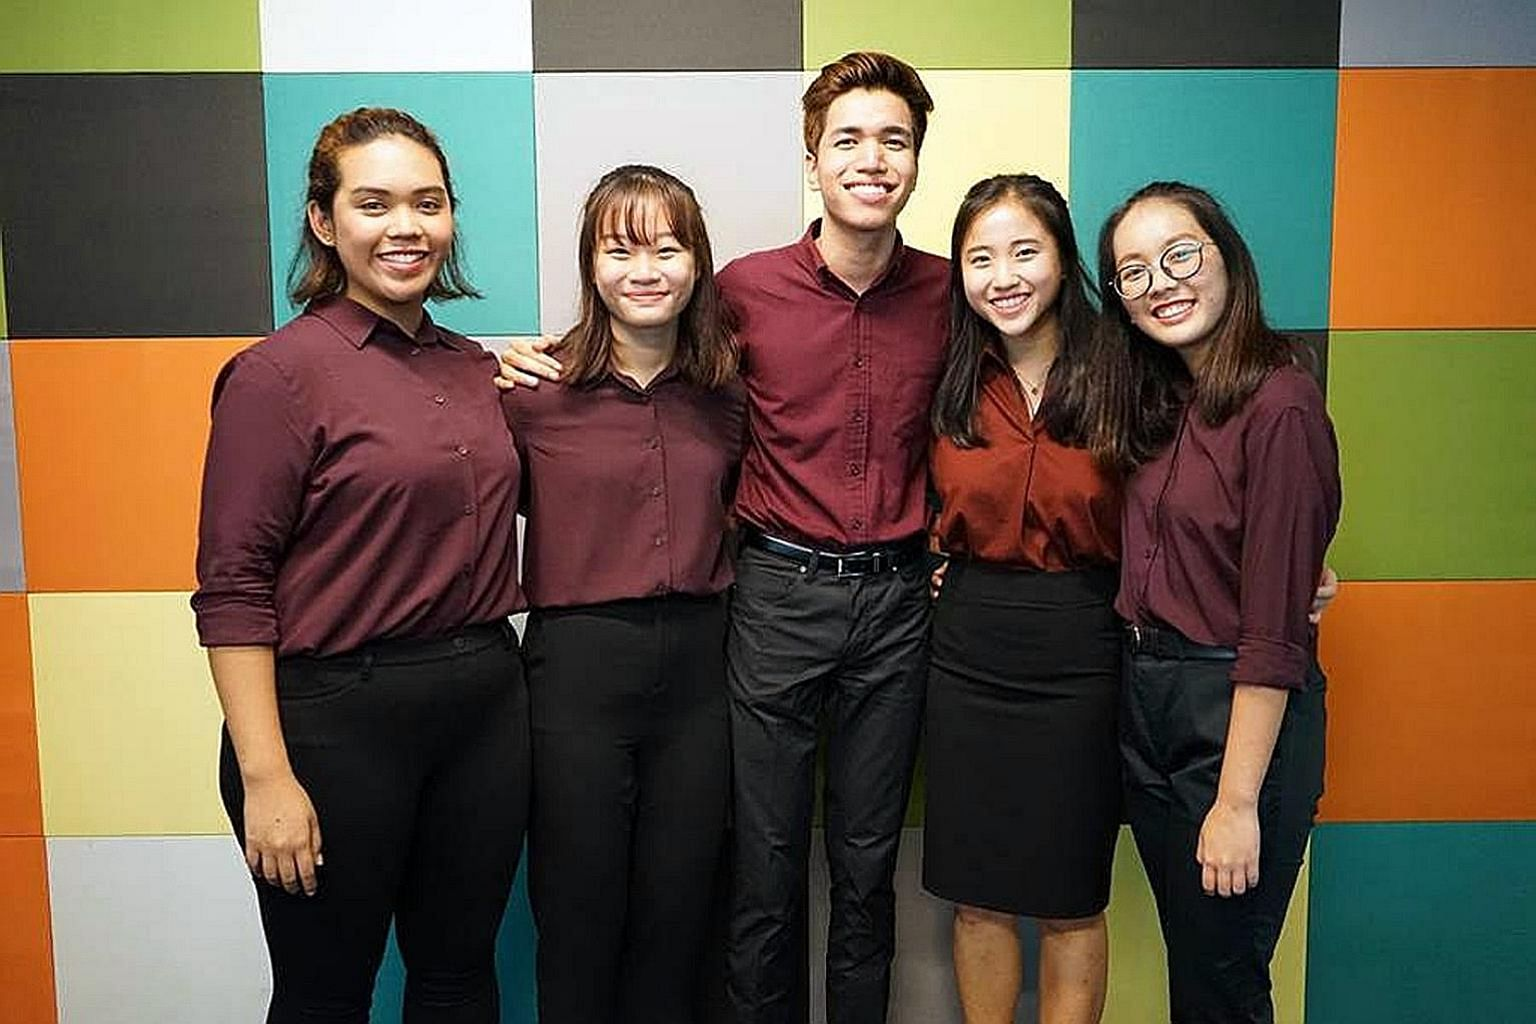 Members of the Singapore Polytechnic team involved in the survey include (from left) Nur Khairiyah, Tracey Ang, Muhammad Farhan, Melissa Anne Lim and Sammi Poo.